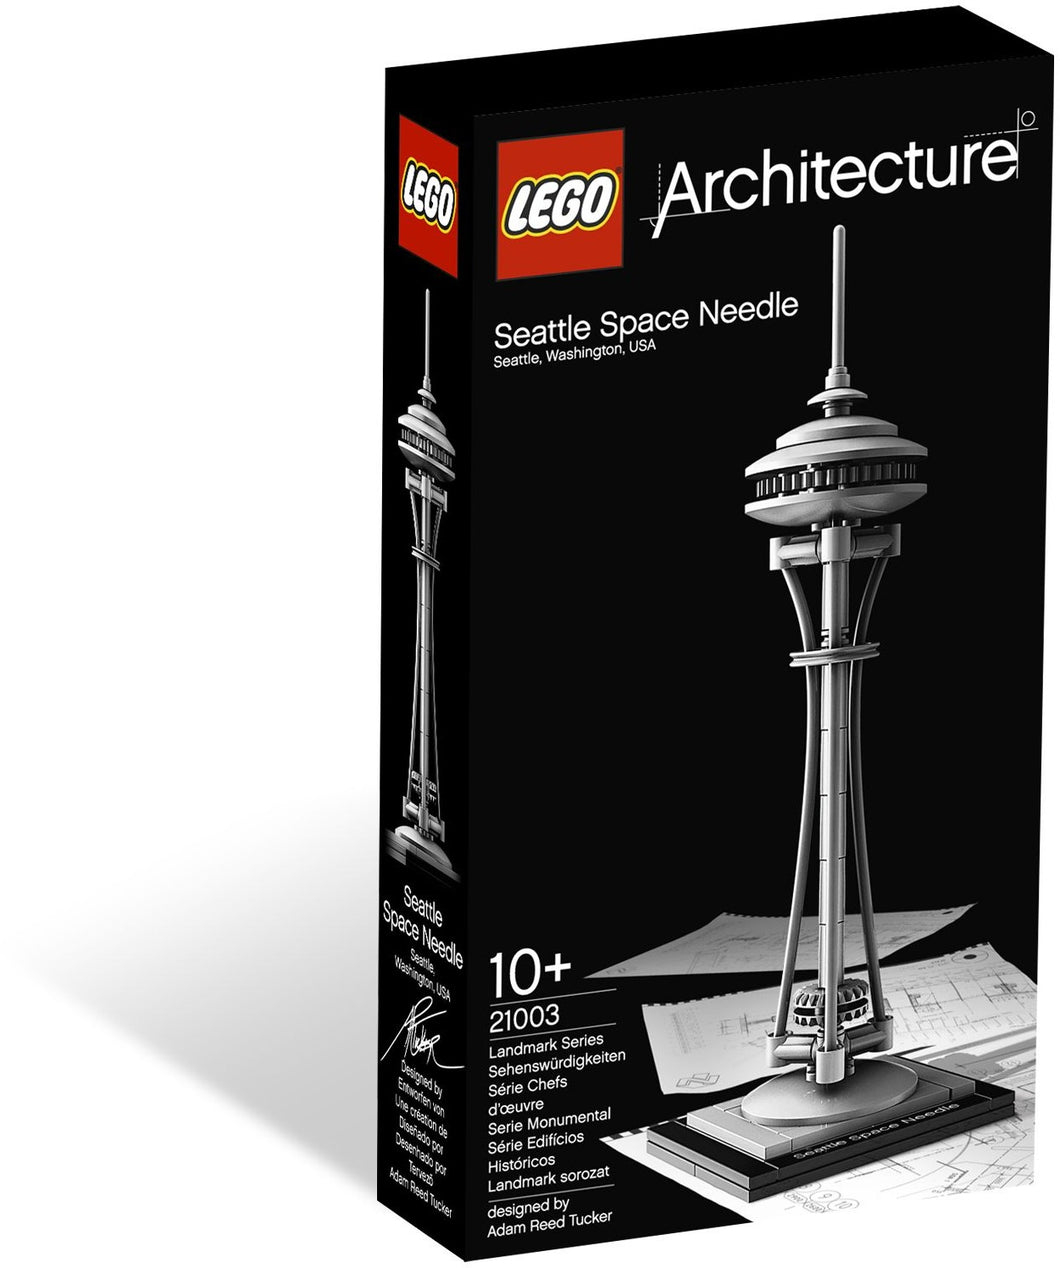 21003 Seattle Space Needle (Certified Set)